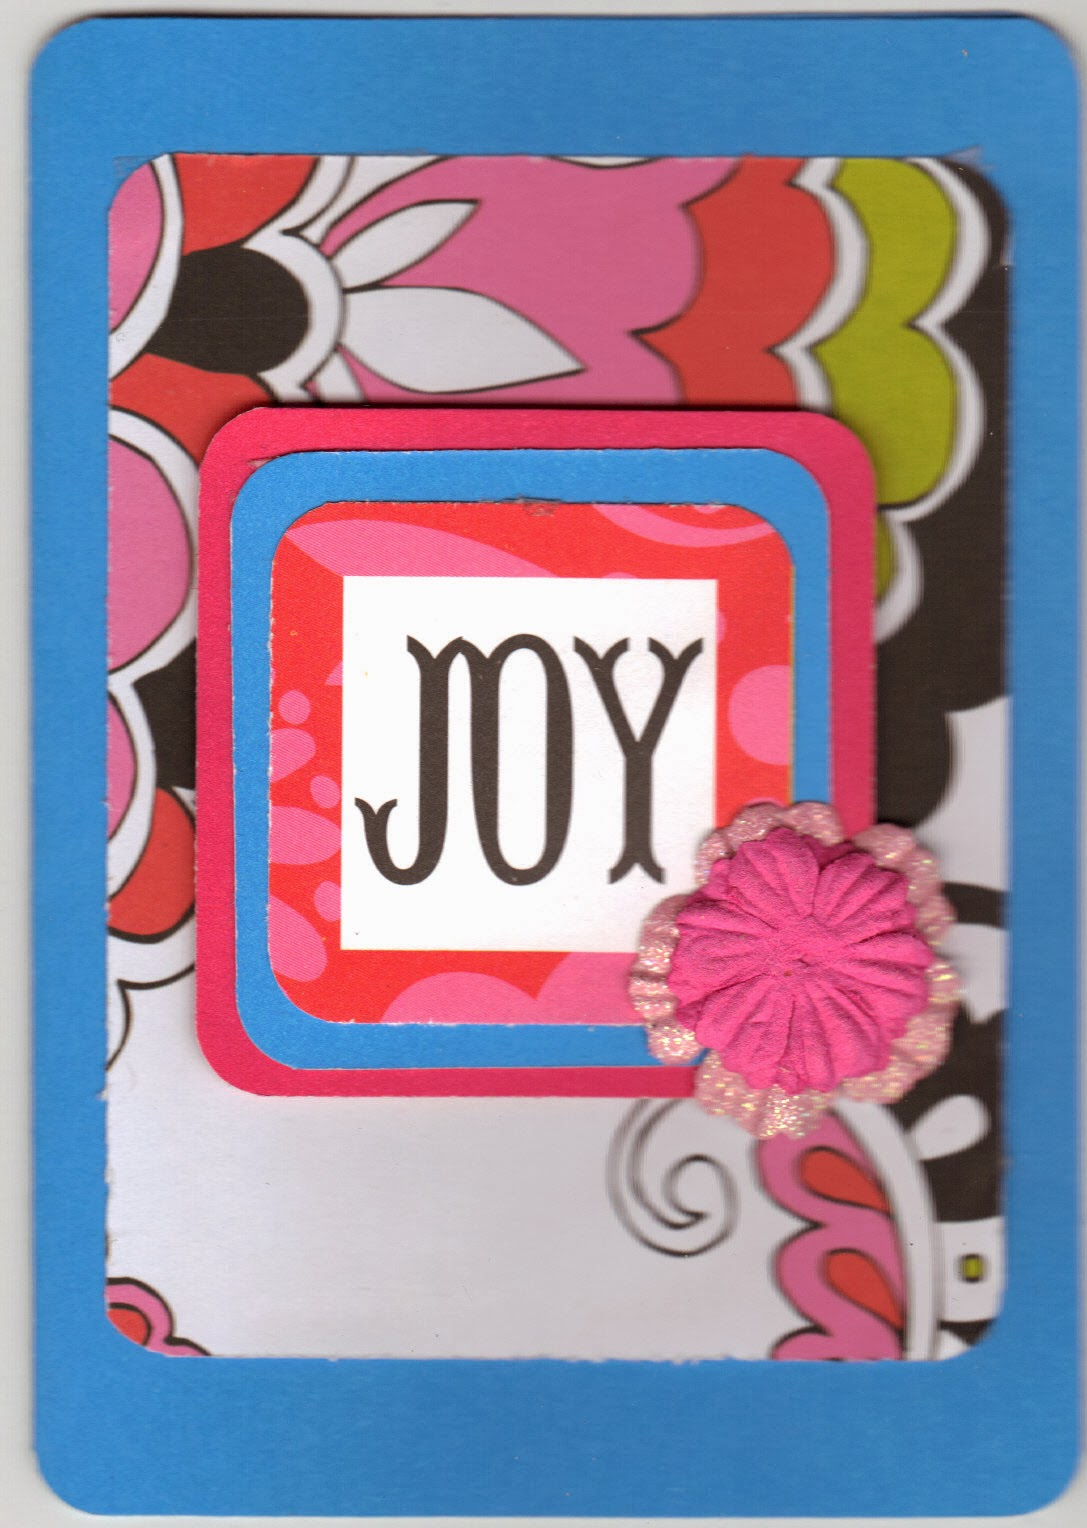 https://www.craftfoxes.com/shop/bearyamazing-s-shop-joy-blue-flow-handmade-card#